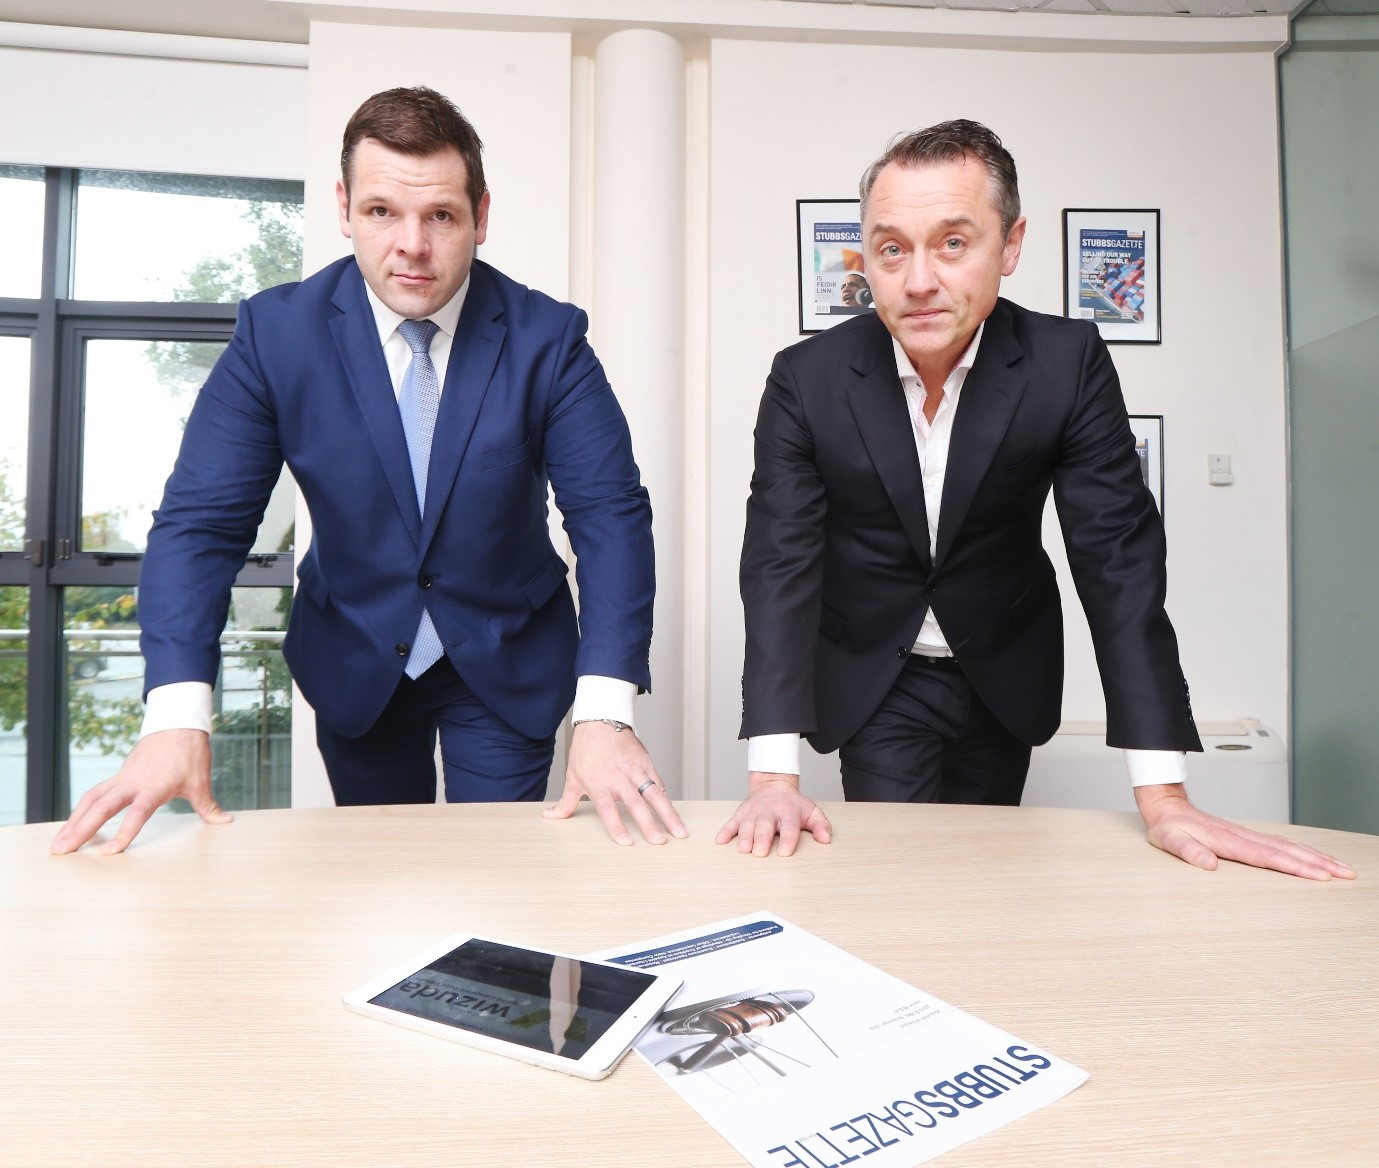 Wizuda Commercial Director Mike Ross with StubbsGazette Managing Director James Treacy